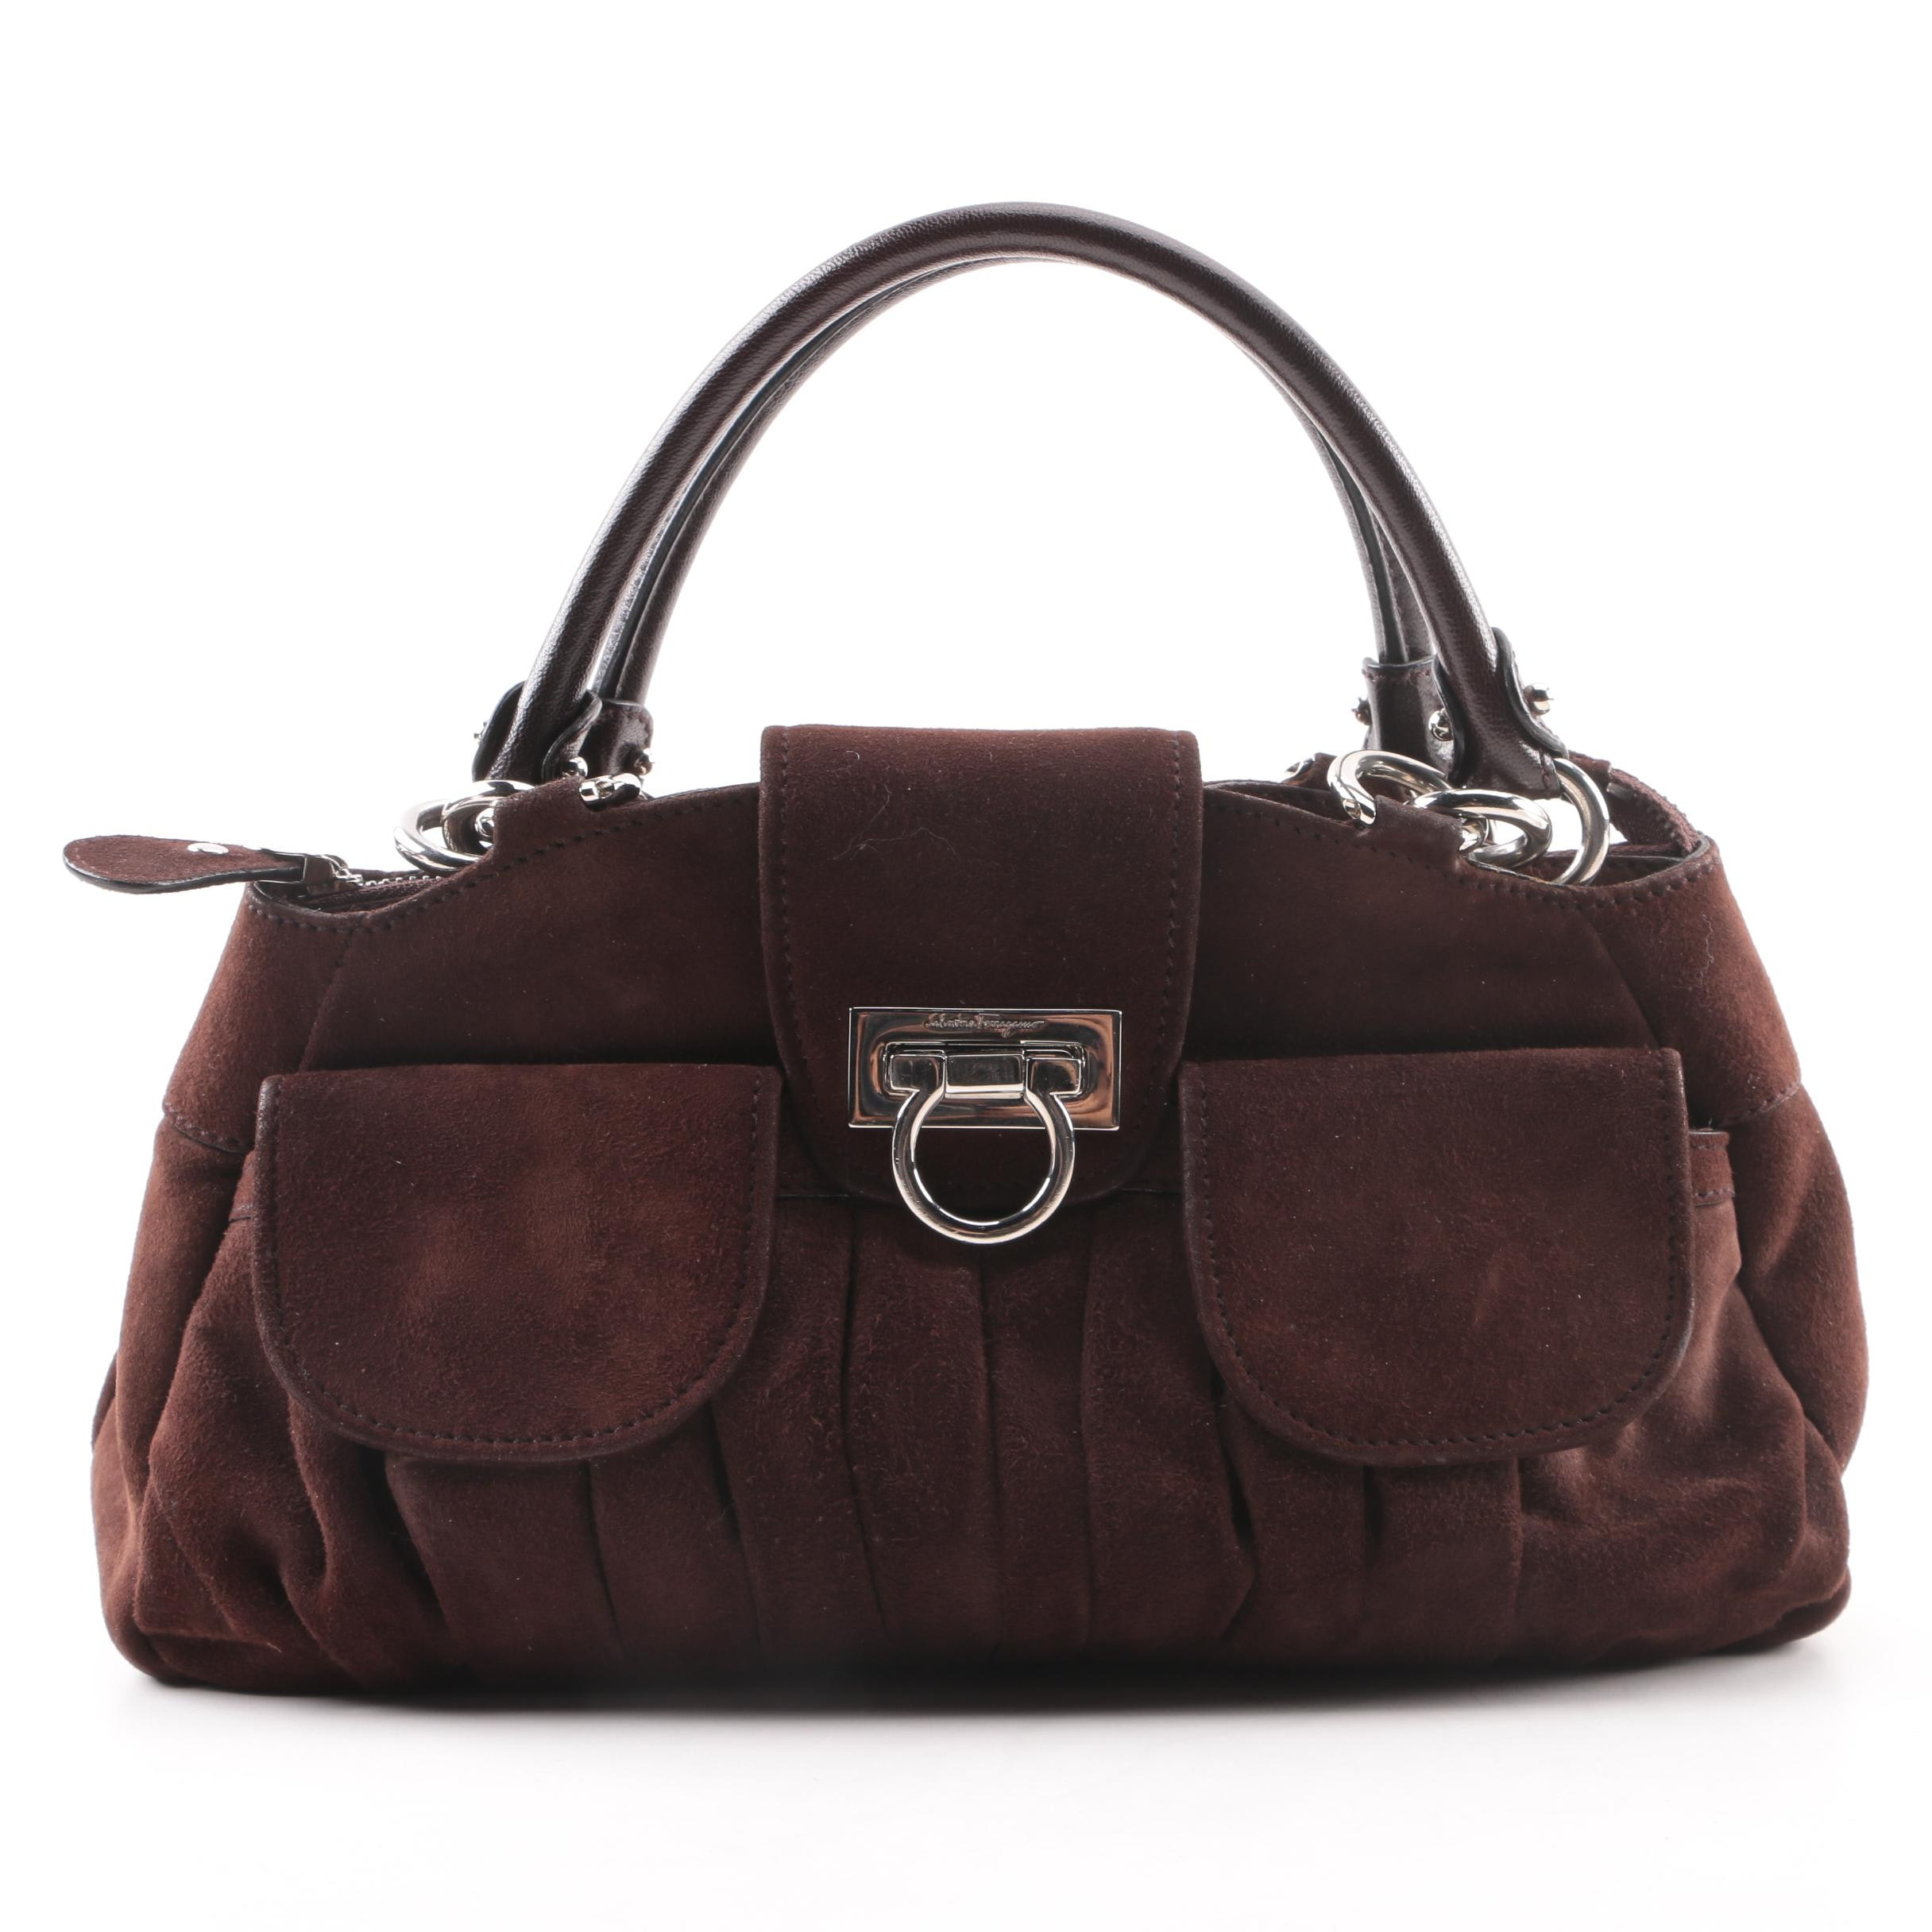 Salvatore Ferragamo Brown Suede and Leather Turn Lock Satchel